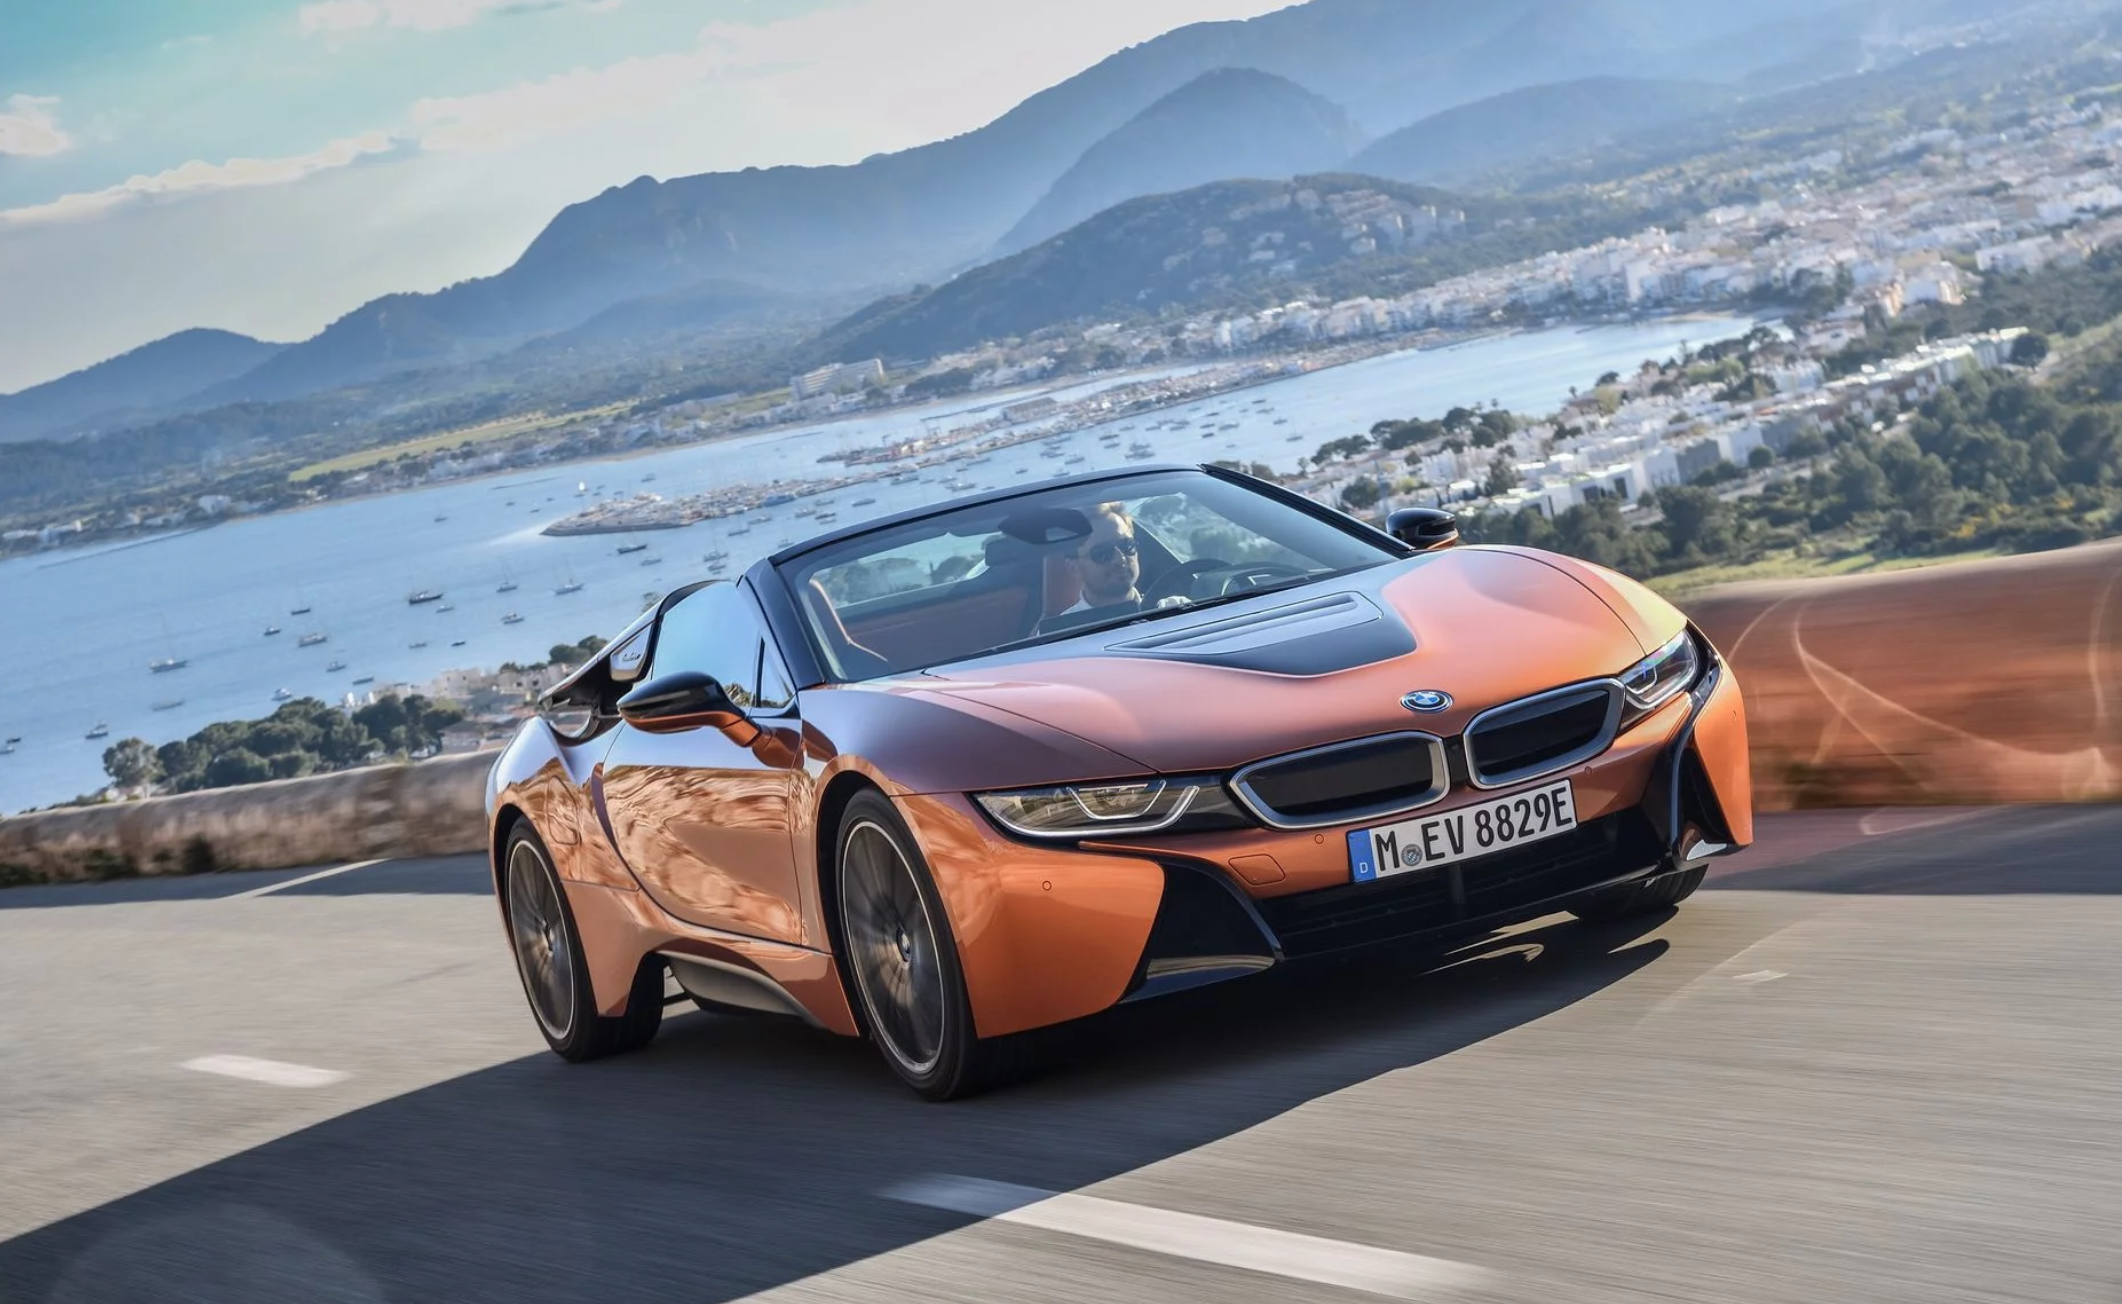 bmw-i8-roadster-010.png